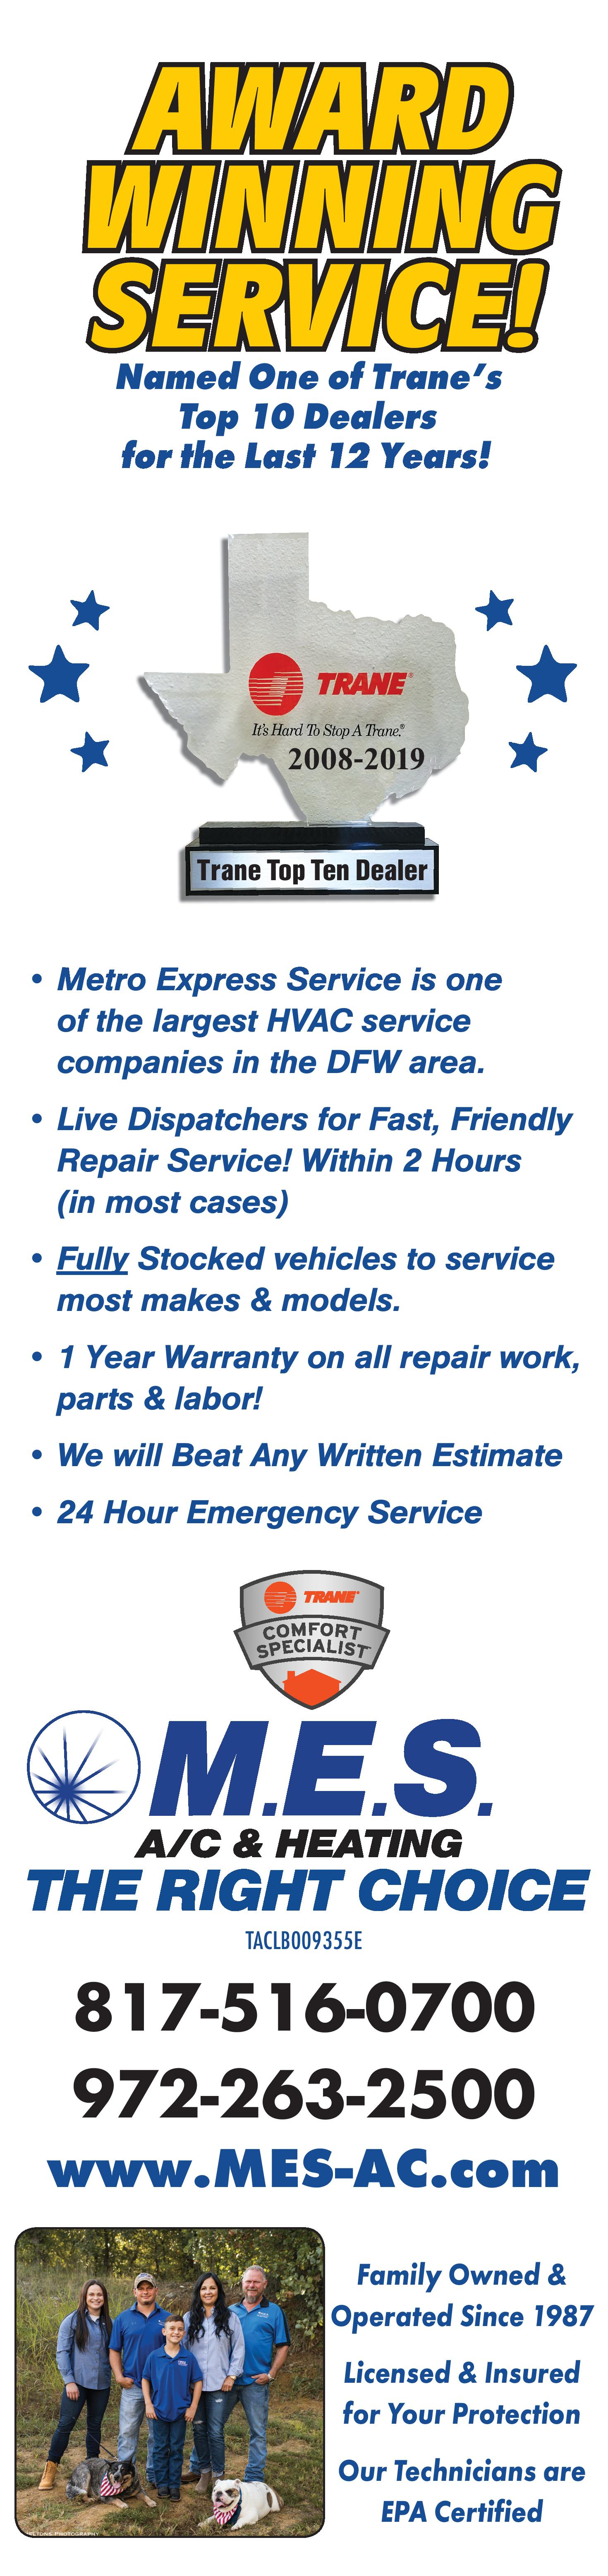 Award Winning HVAC Services